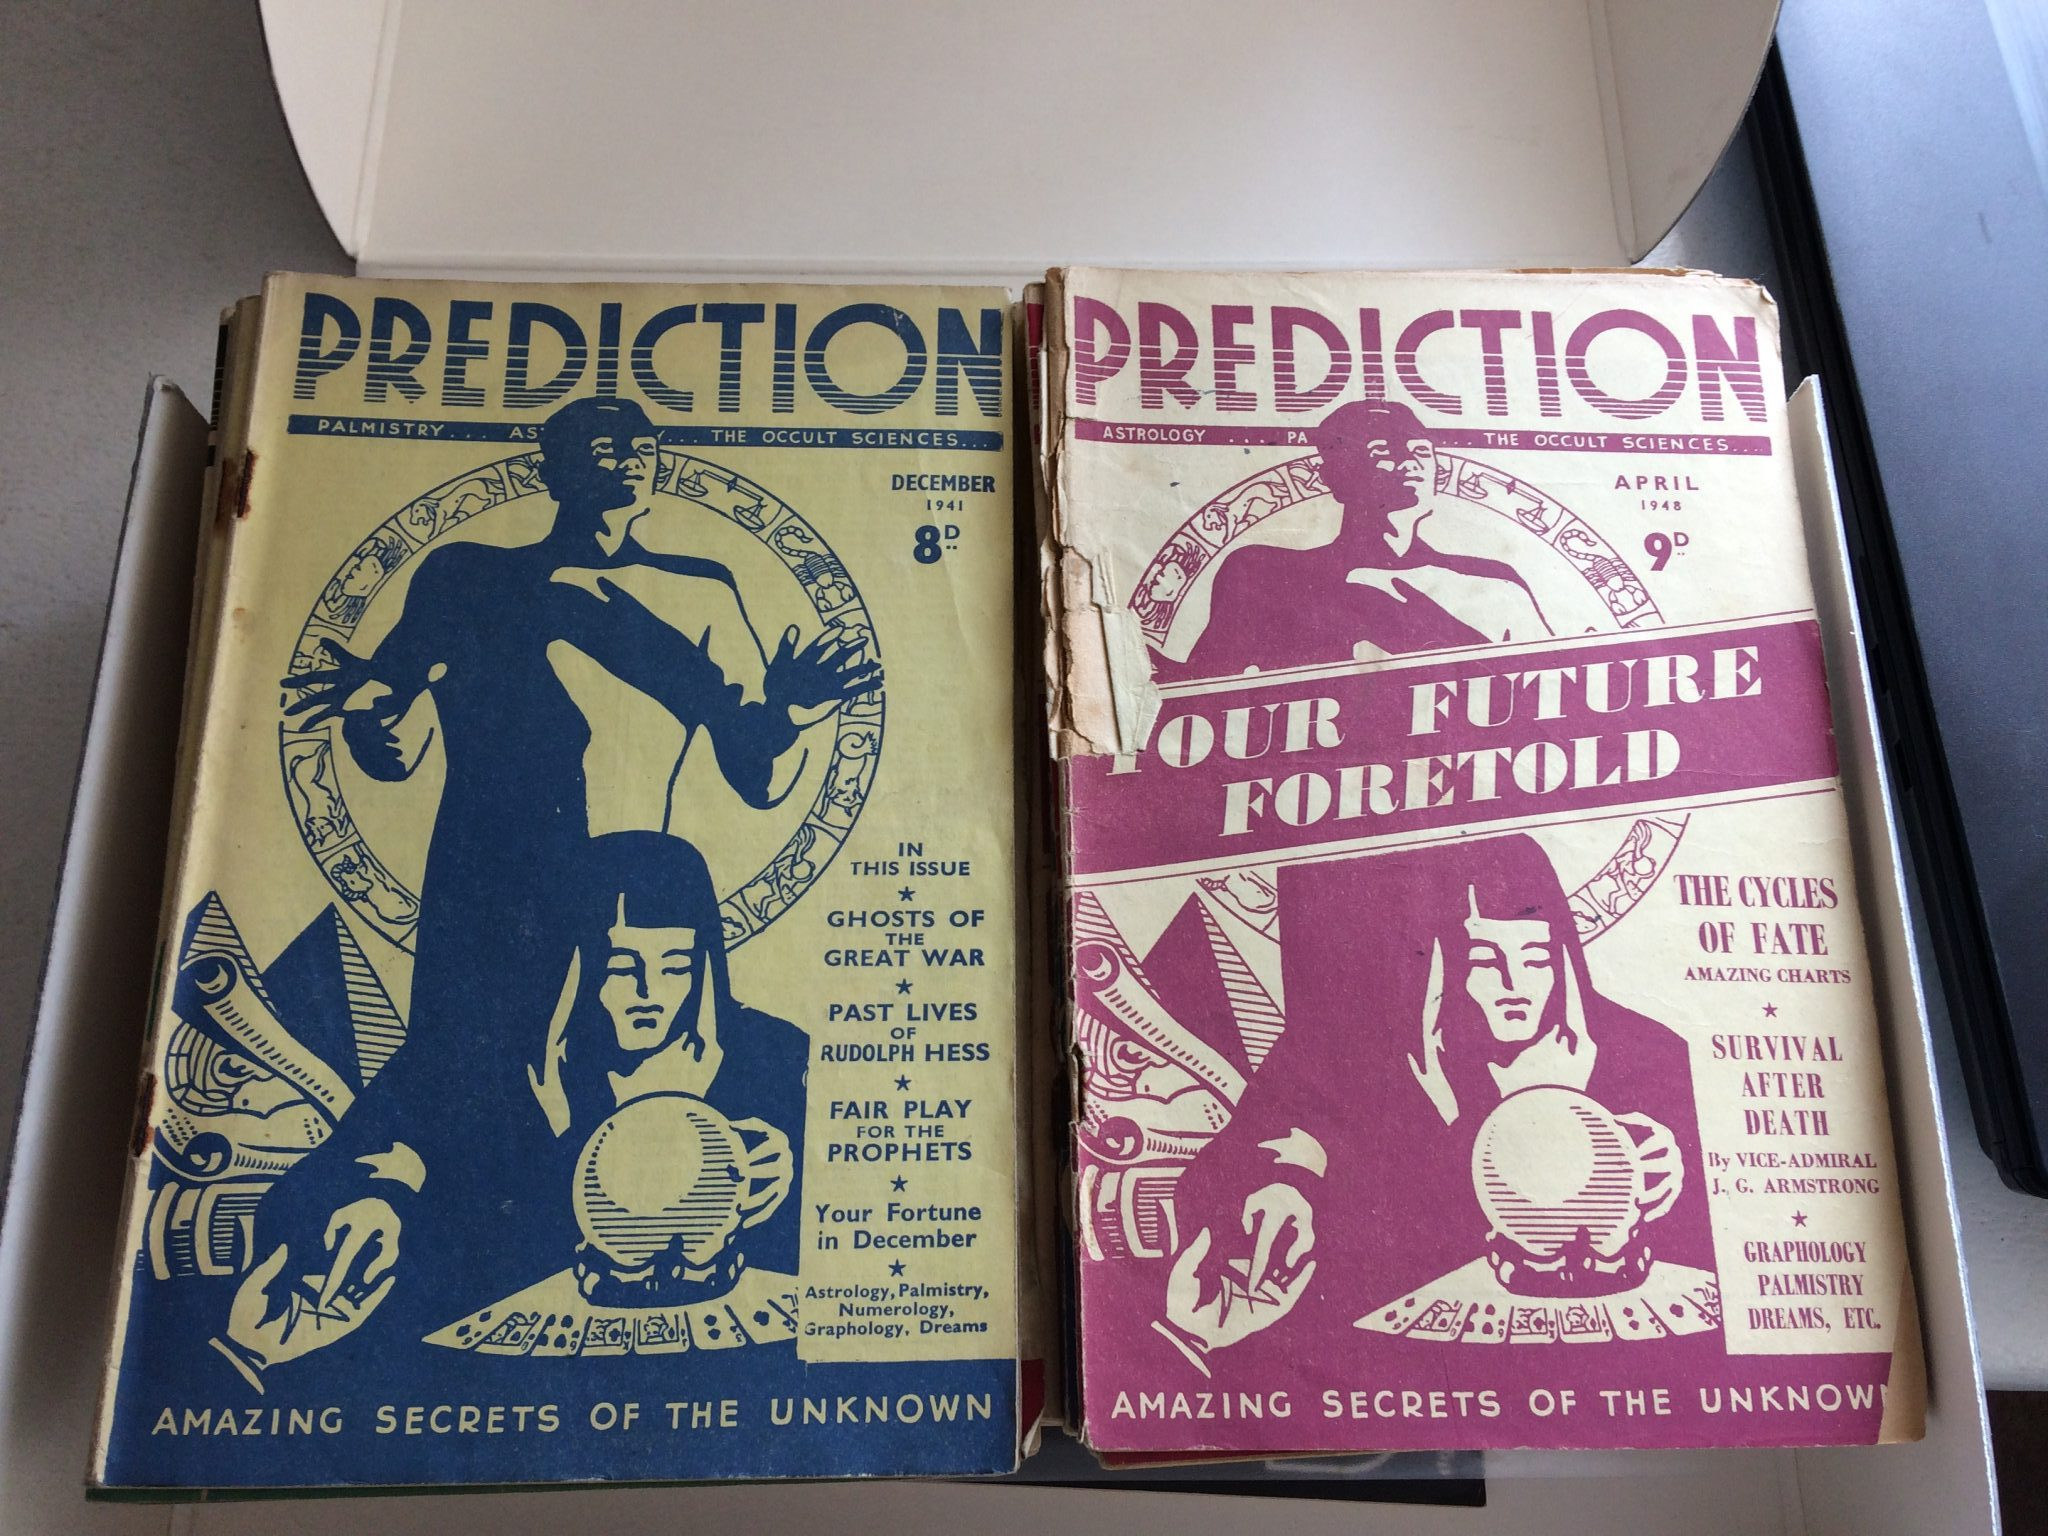 Expansion of Prediction Magazine collection